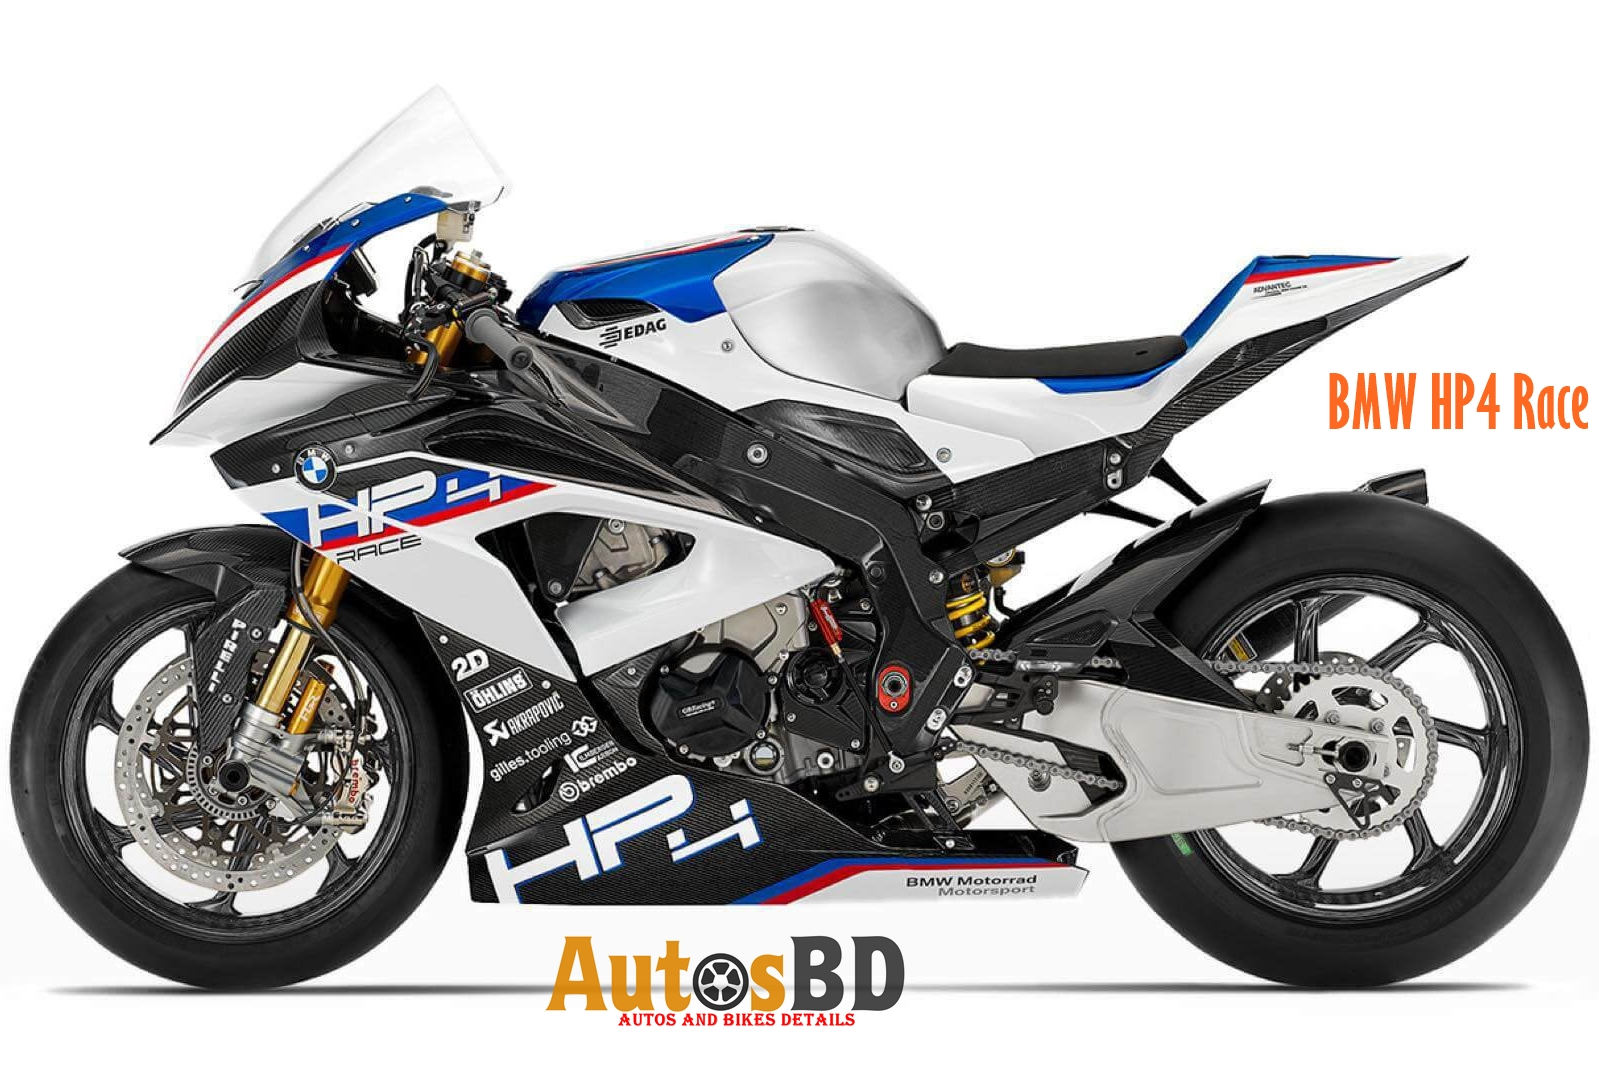 BMW HP4 Race Price in India